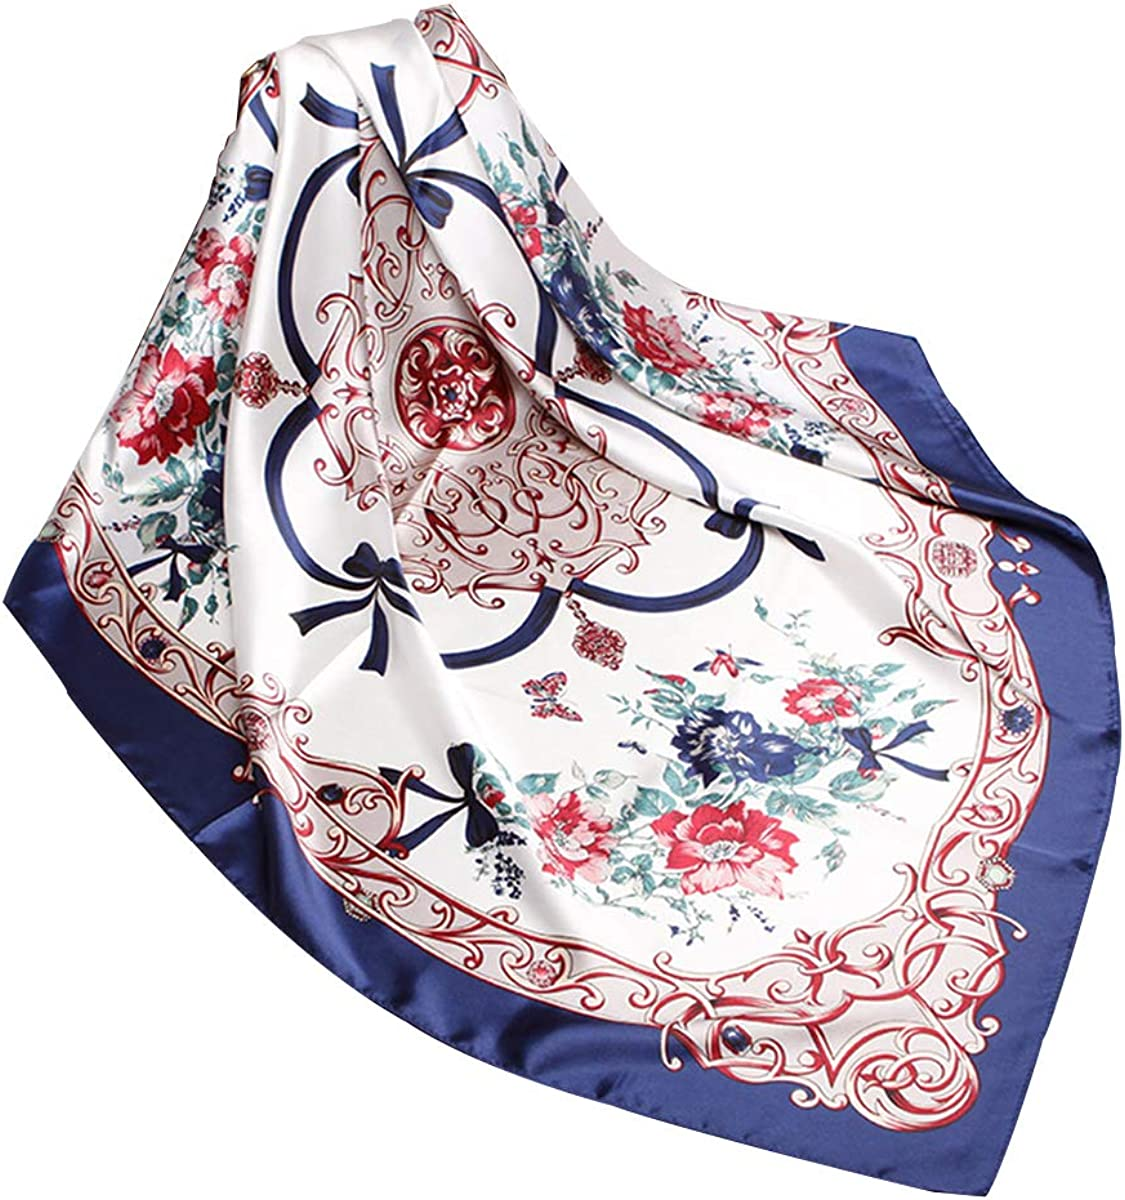 Cat Print Scarf Lightweight  Soft Silky Satin Feel Printed Fashion Scarves